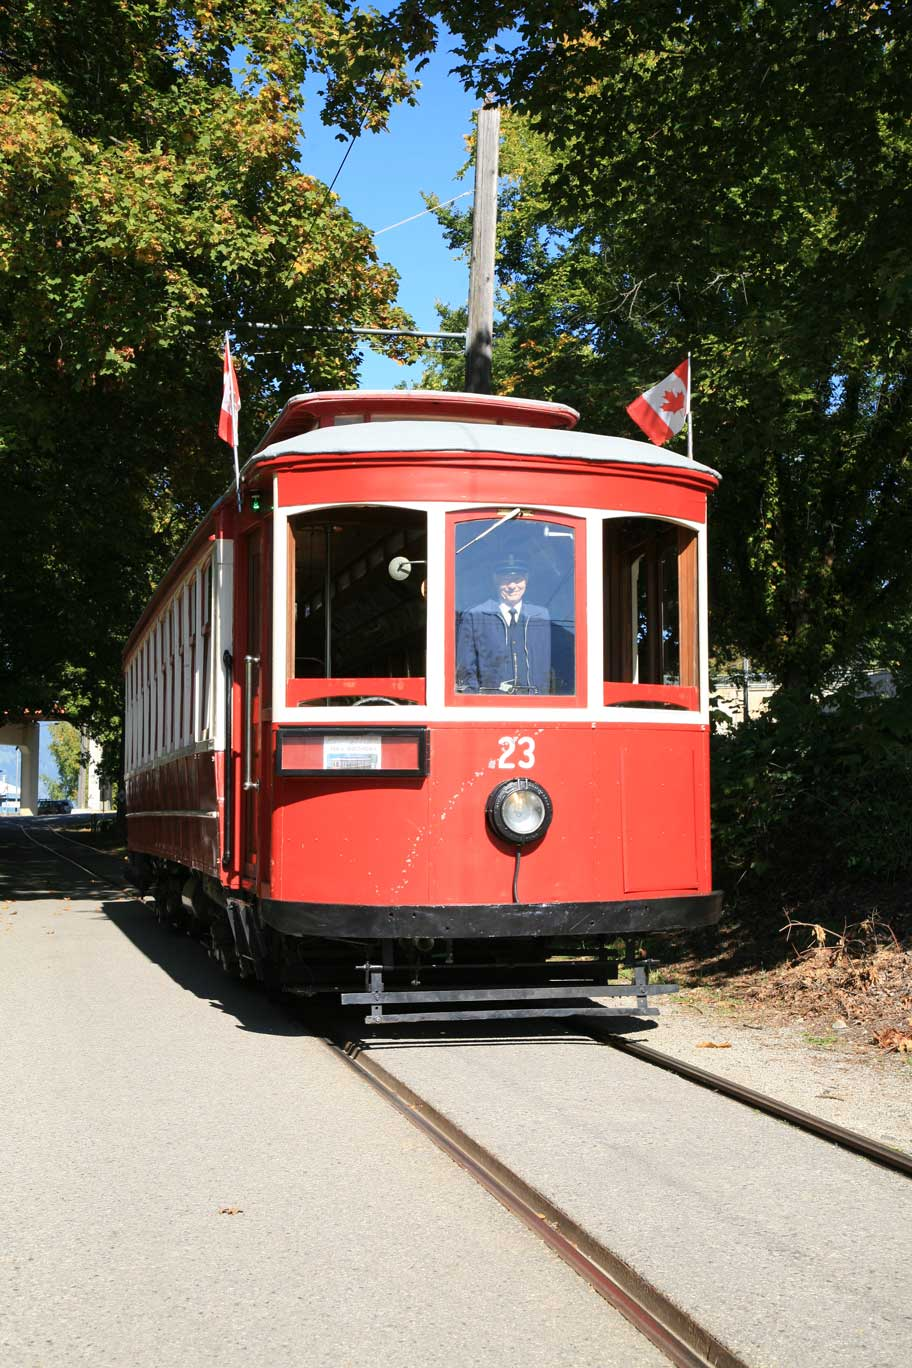 Be sure to hop aboard streetcar #23 in Nelson for a historic ride.